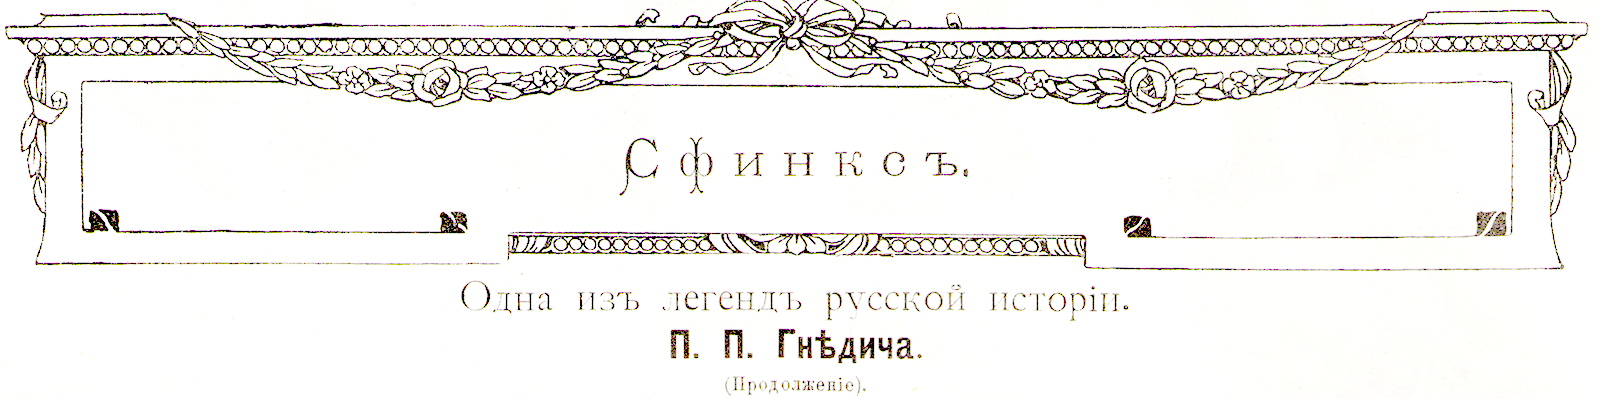 Niva-1911-13-elements-sfinx-shapka.png